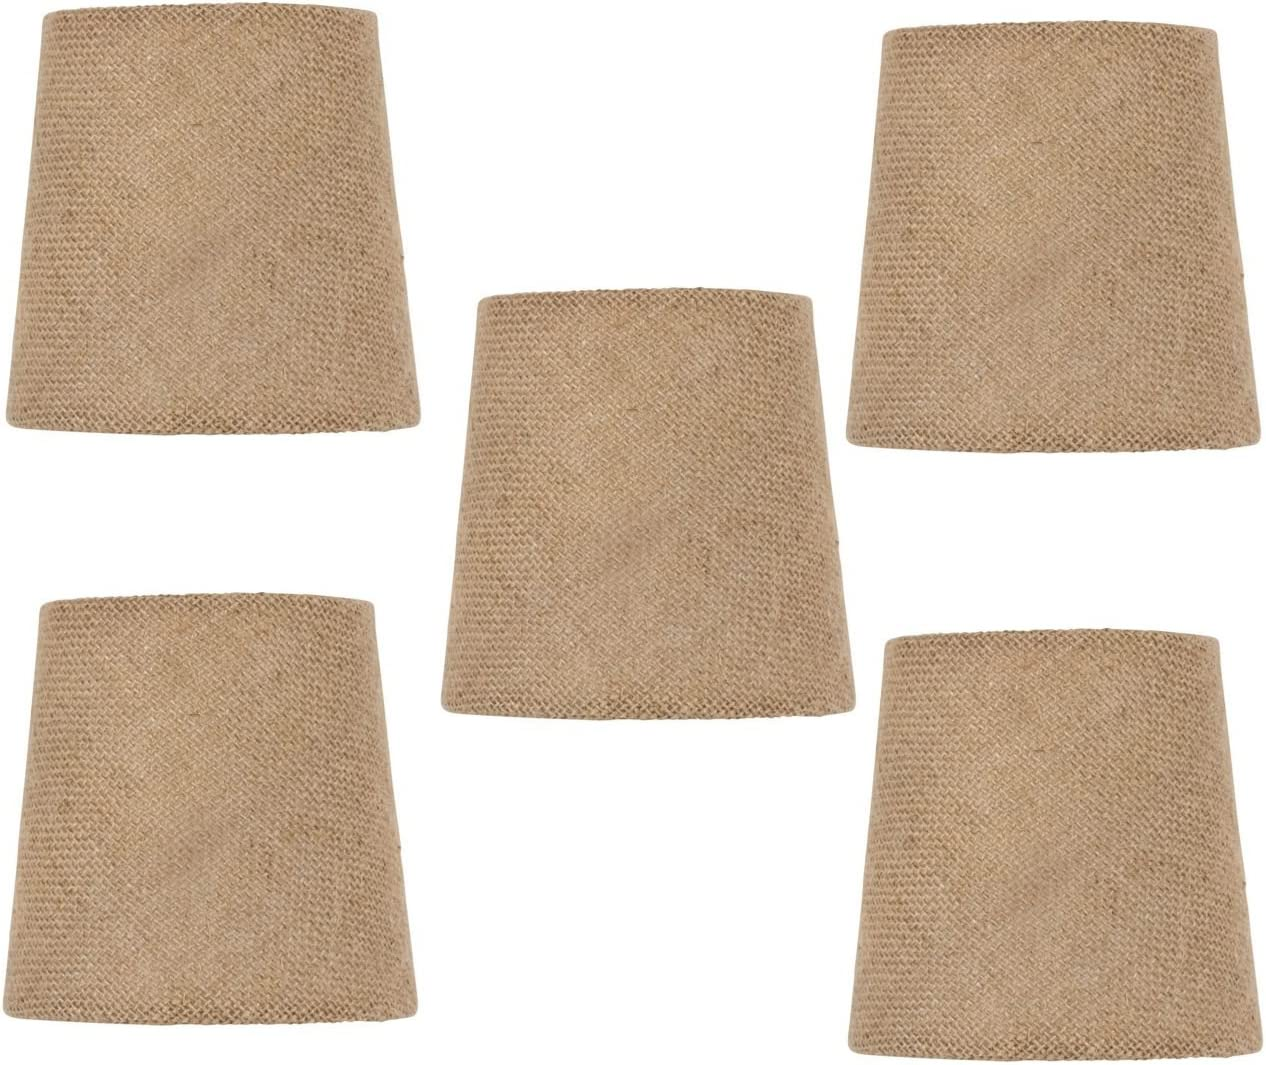 Upgradelights Burlap 4 Inch Mini Clip On Chandelier Shades Set of 5 2.5x4x4